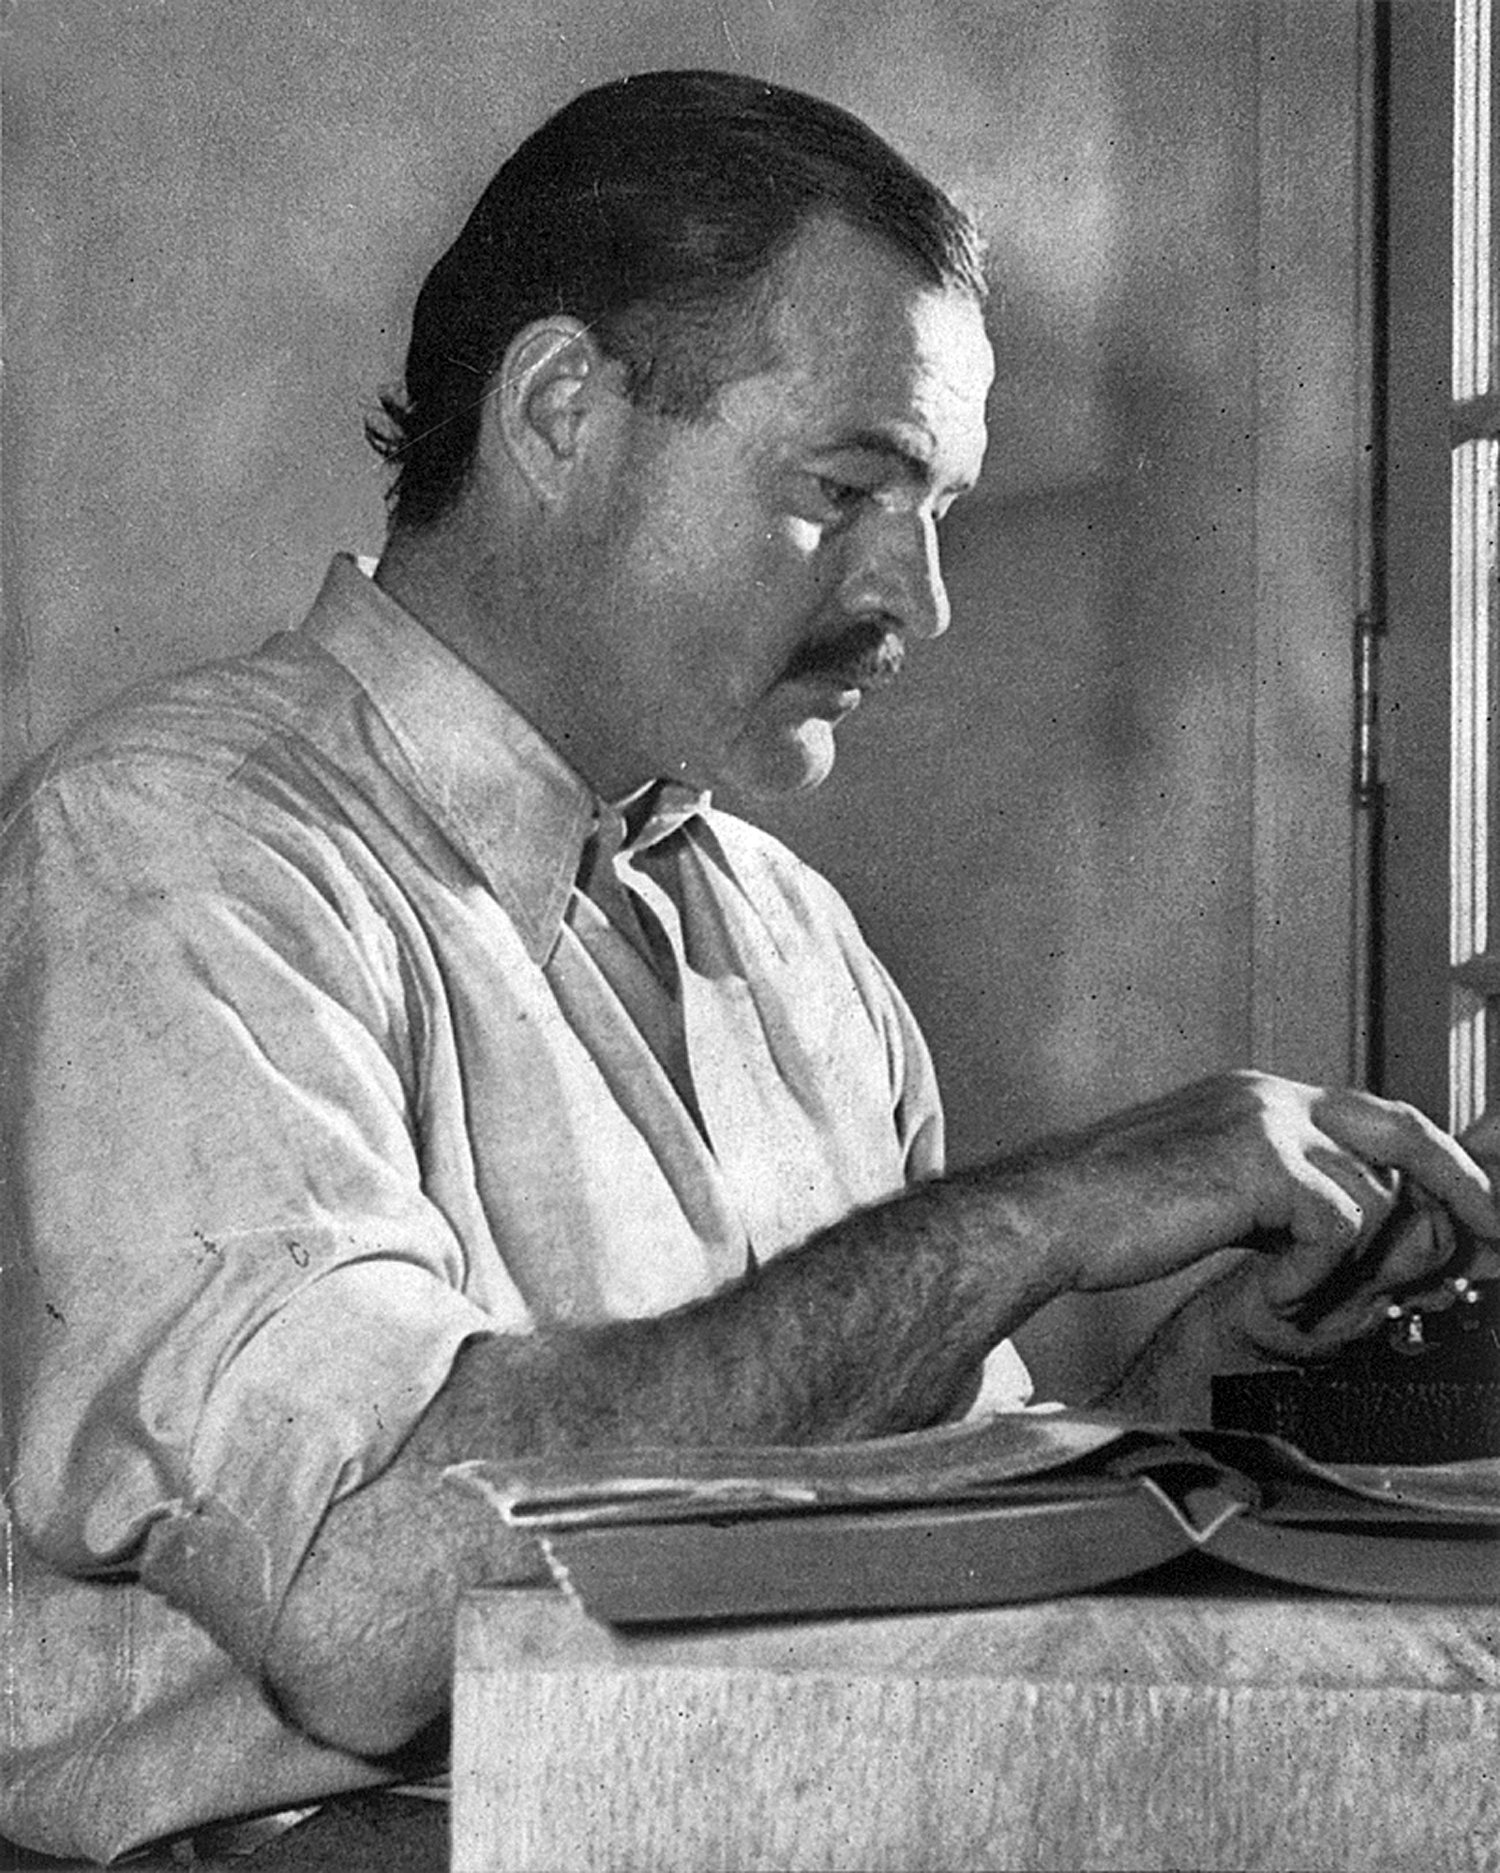 Ernest Hemingway at Sun Valley, Idaho, 1939